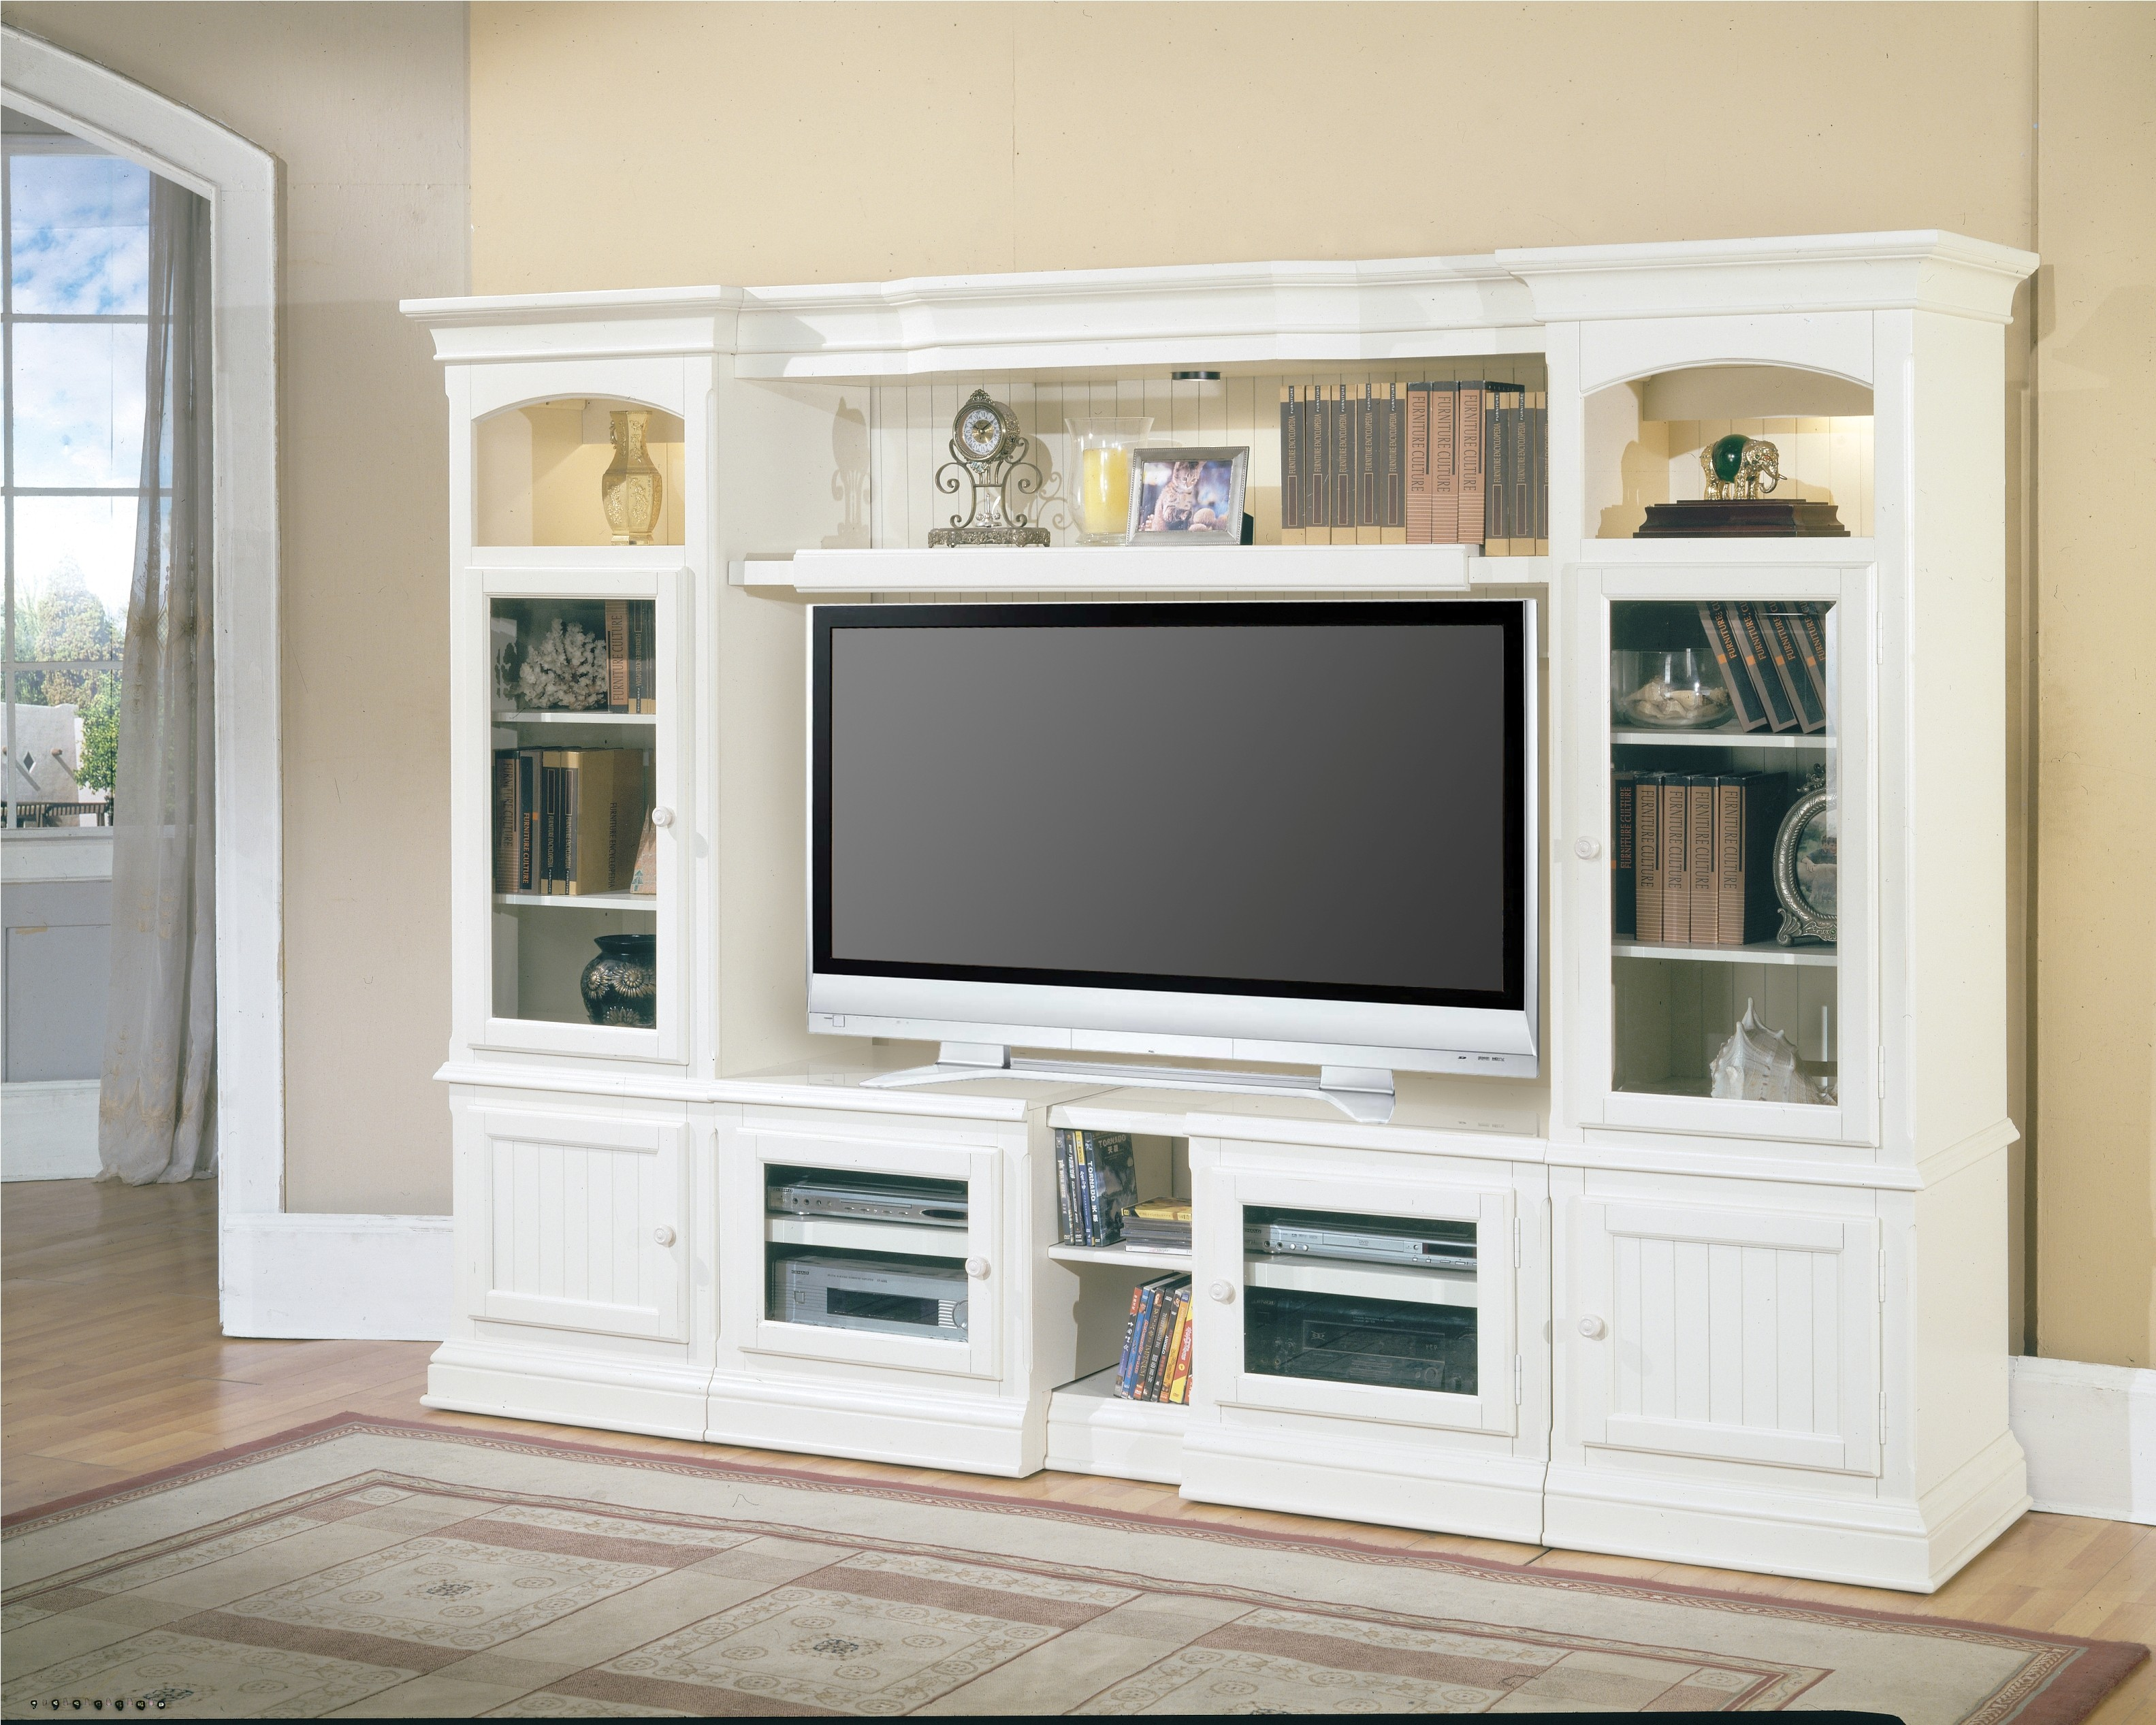 Picture of: Dresser with TV Mount Ideas